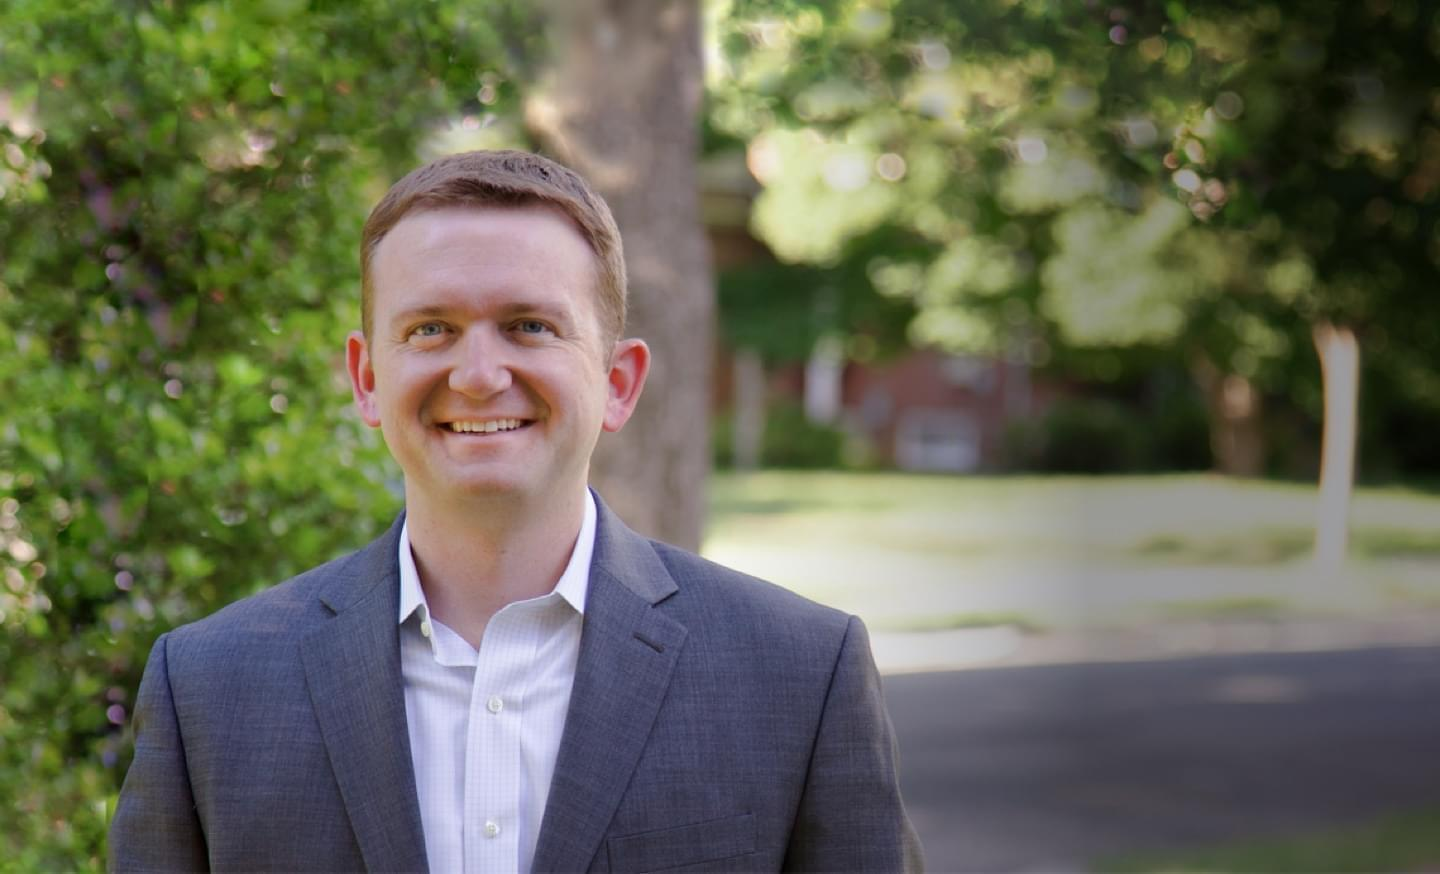 Erik Jones, one of four people running for congress in the 13th congressional district